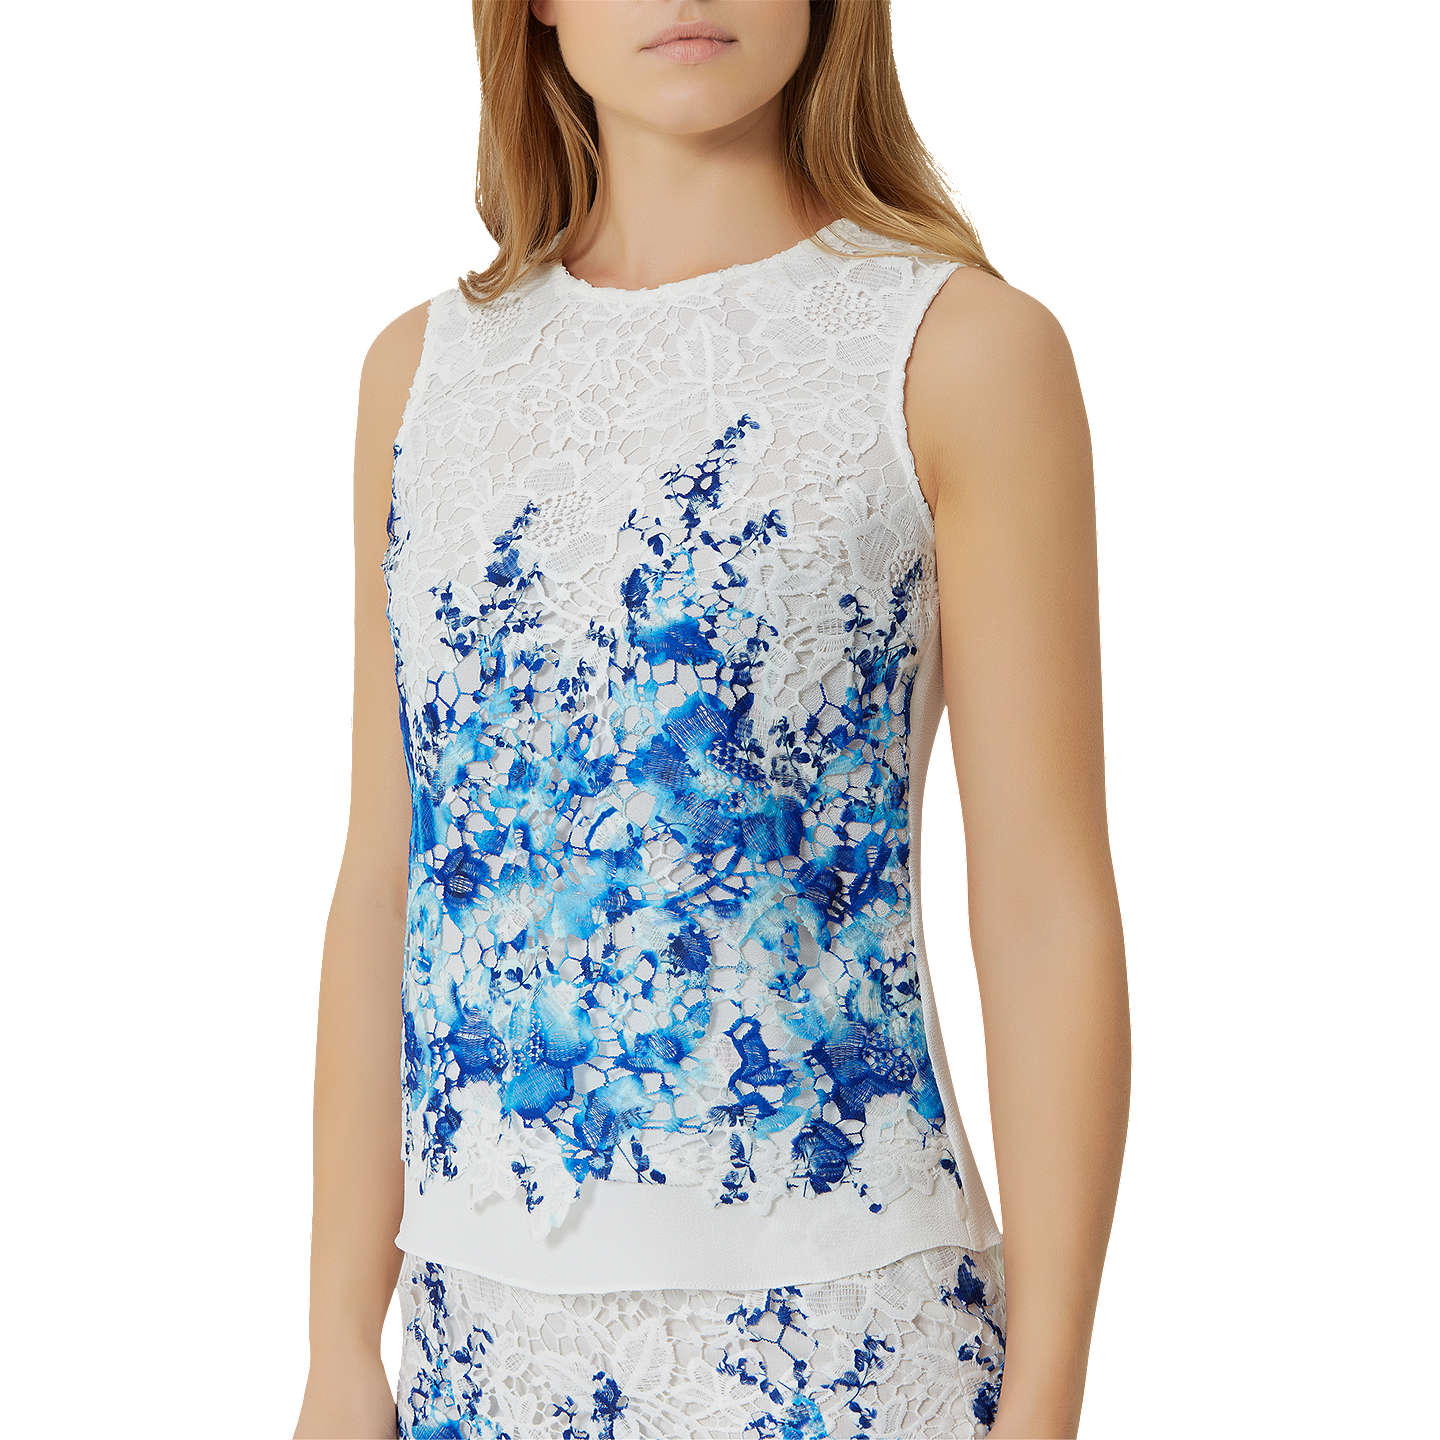 BuyDamsel in a dress Amily Top, Blue, 8 Online at johnlewis.com